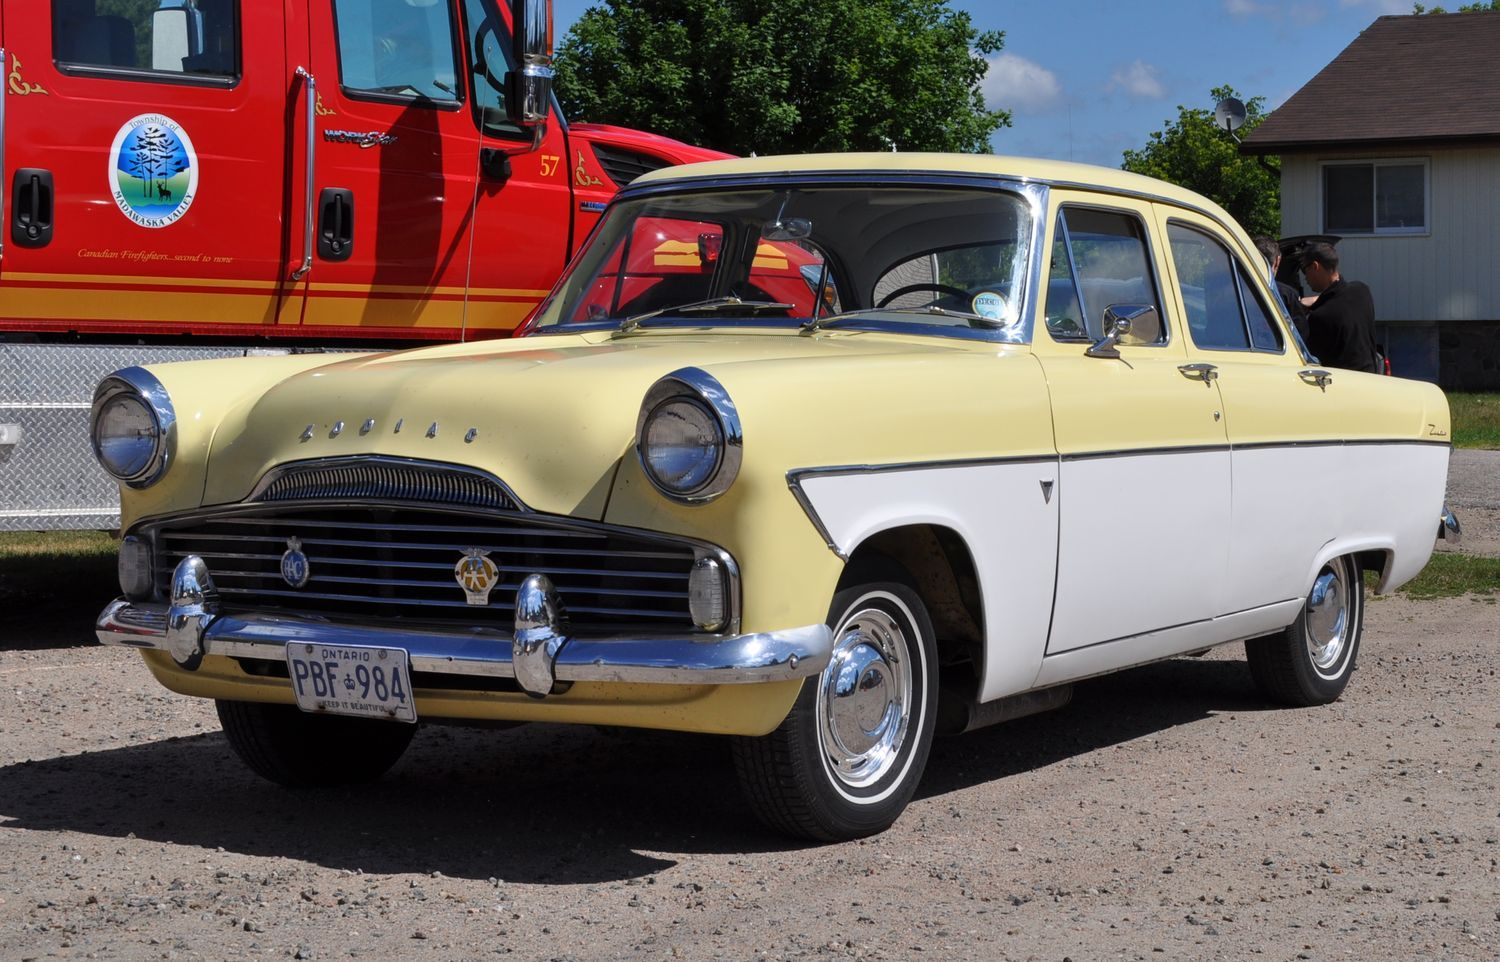 Canadian Sightseeing Ford Zodiac Hemmings Daily Ford Classic Cars Classic Cars Classic Cars Vintage